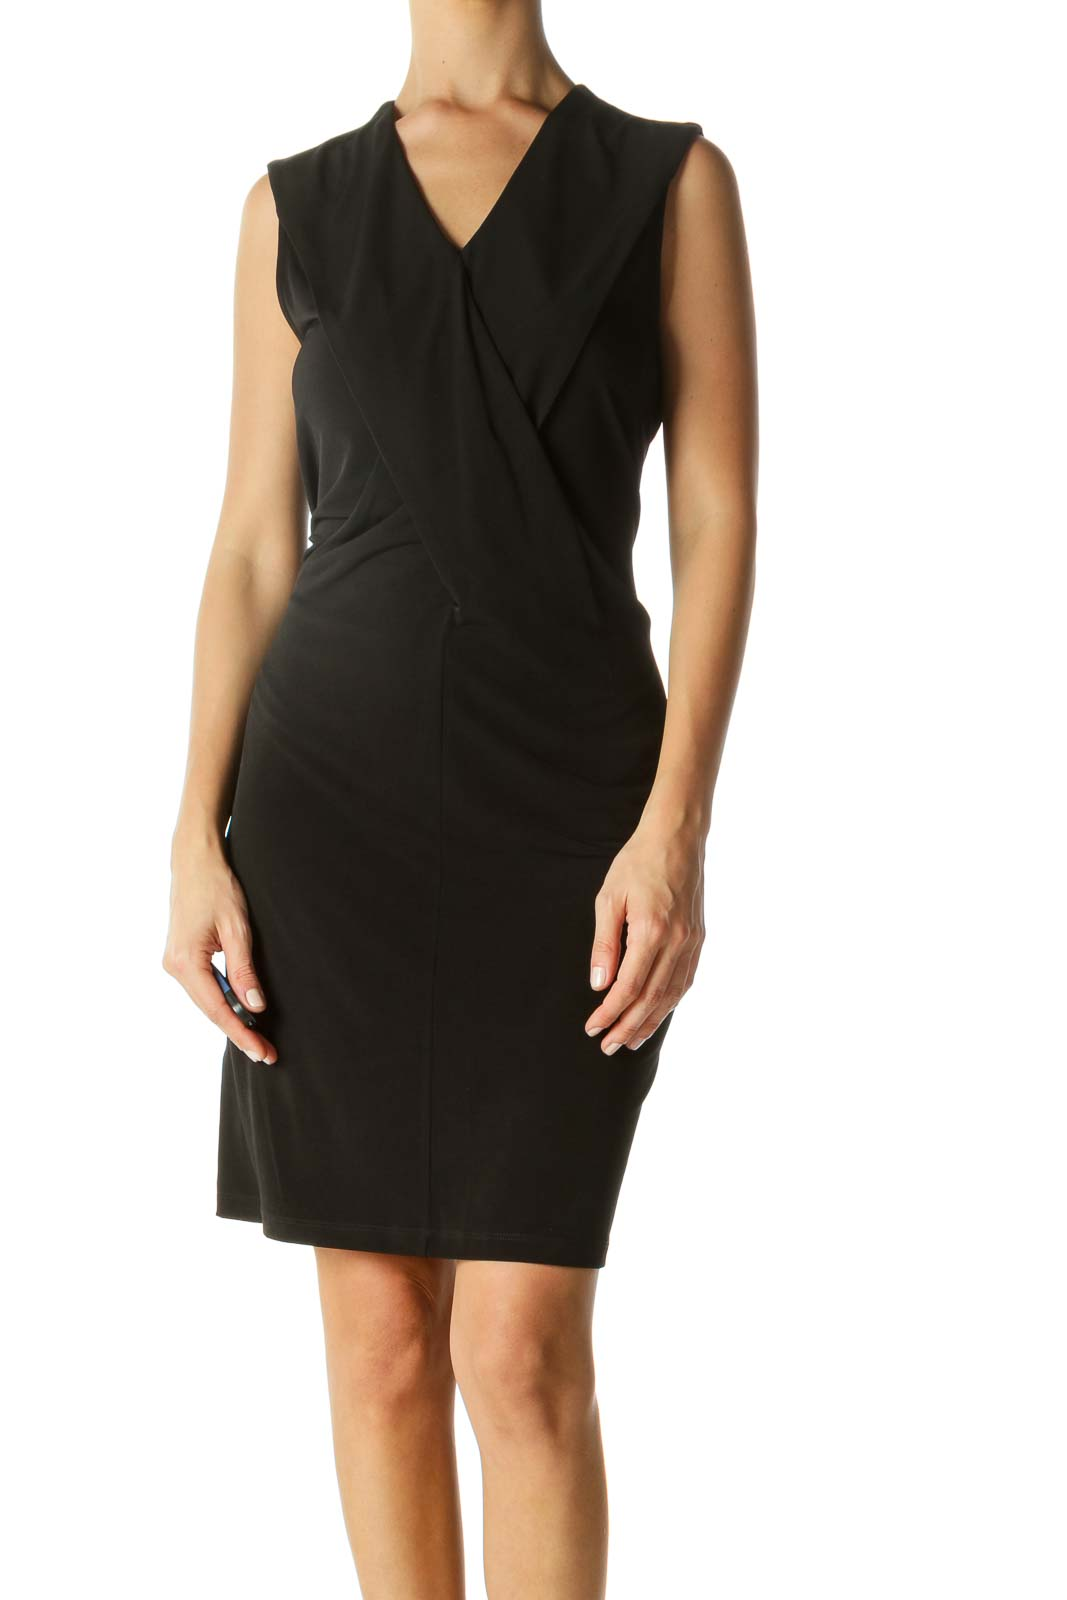 Black V-Neck Stretch Front Detail Work Dress Front